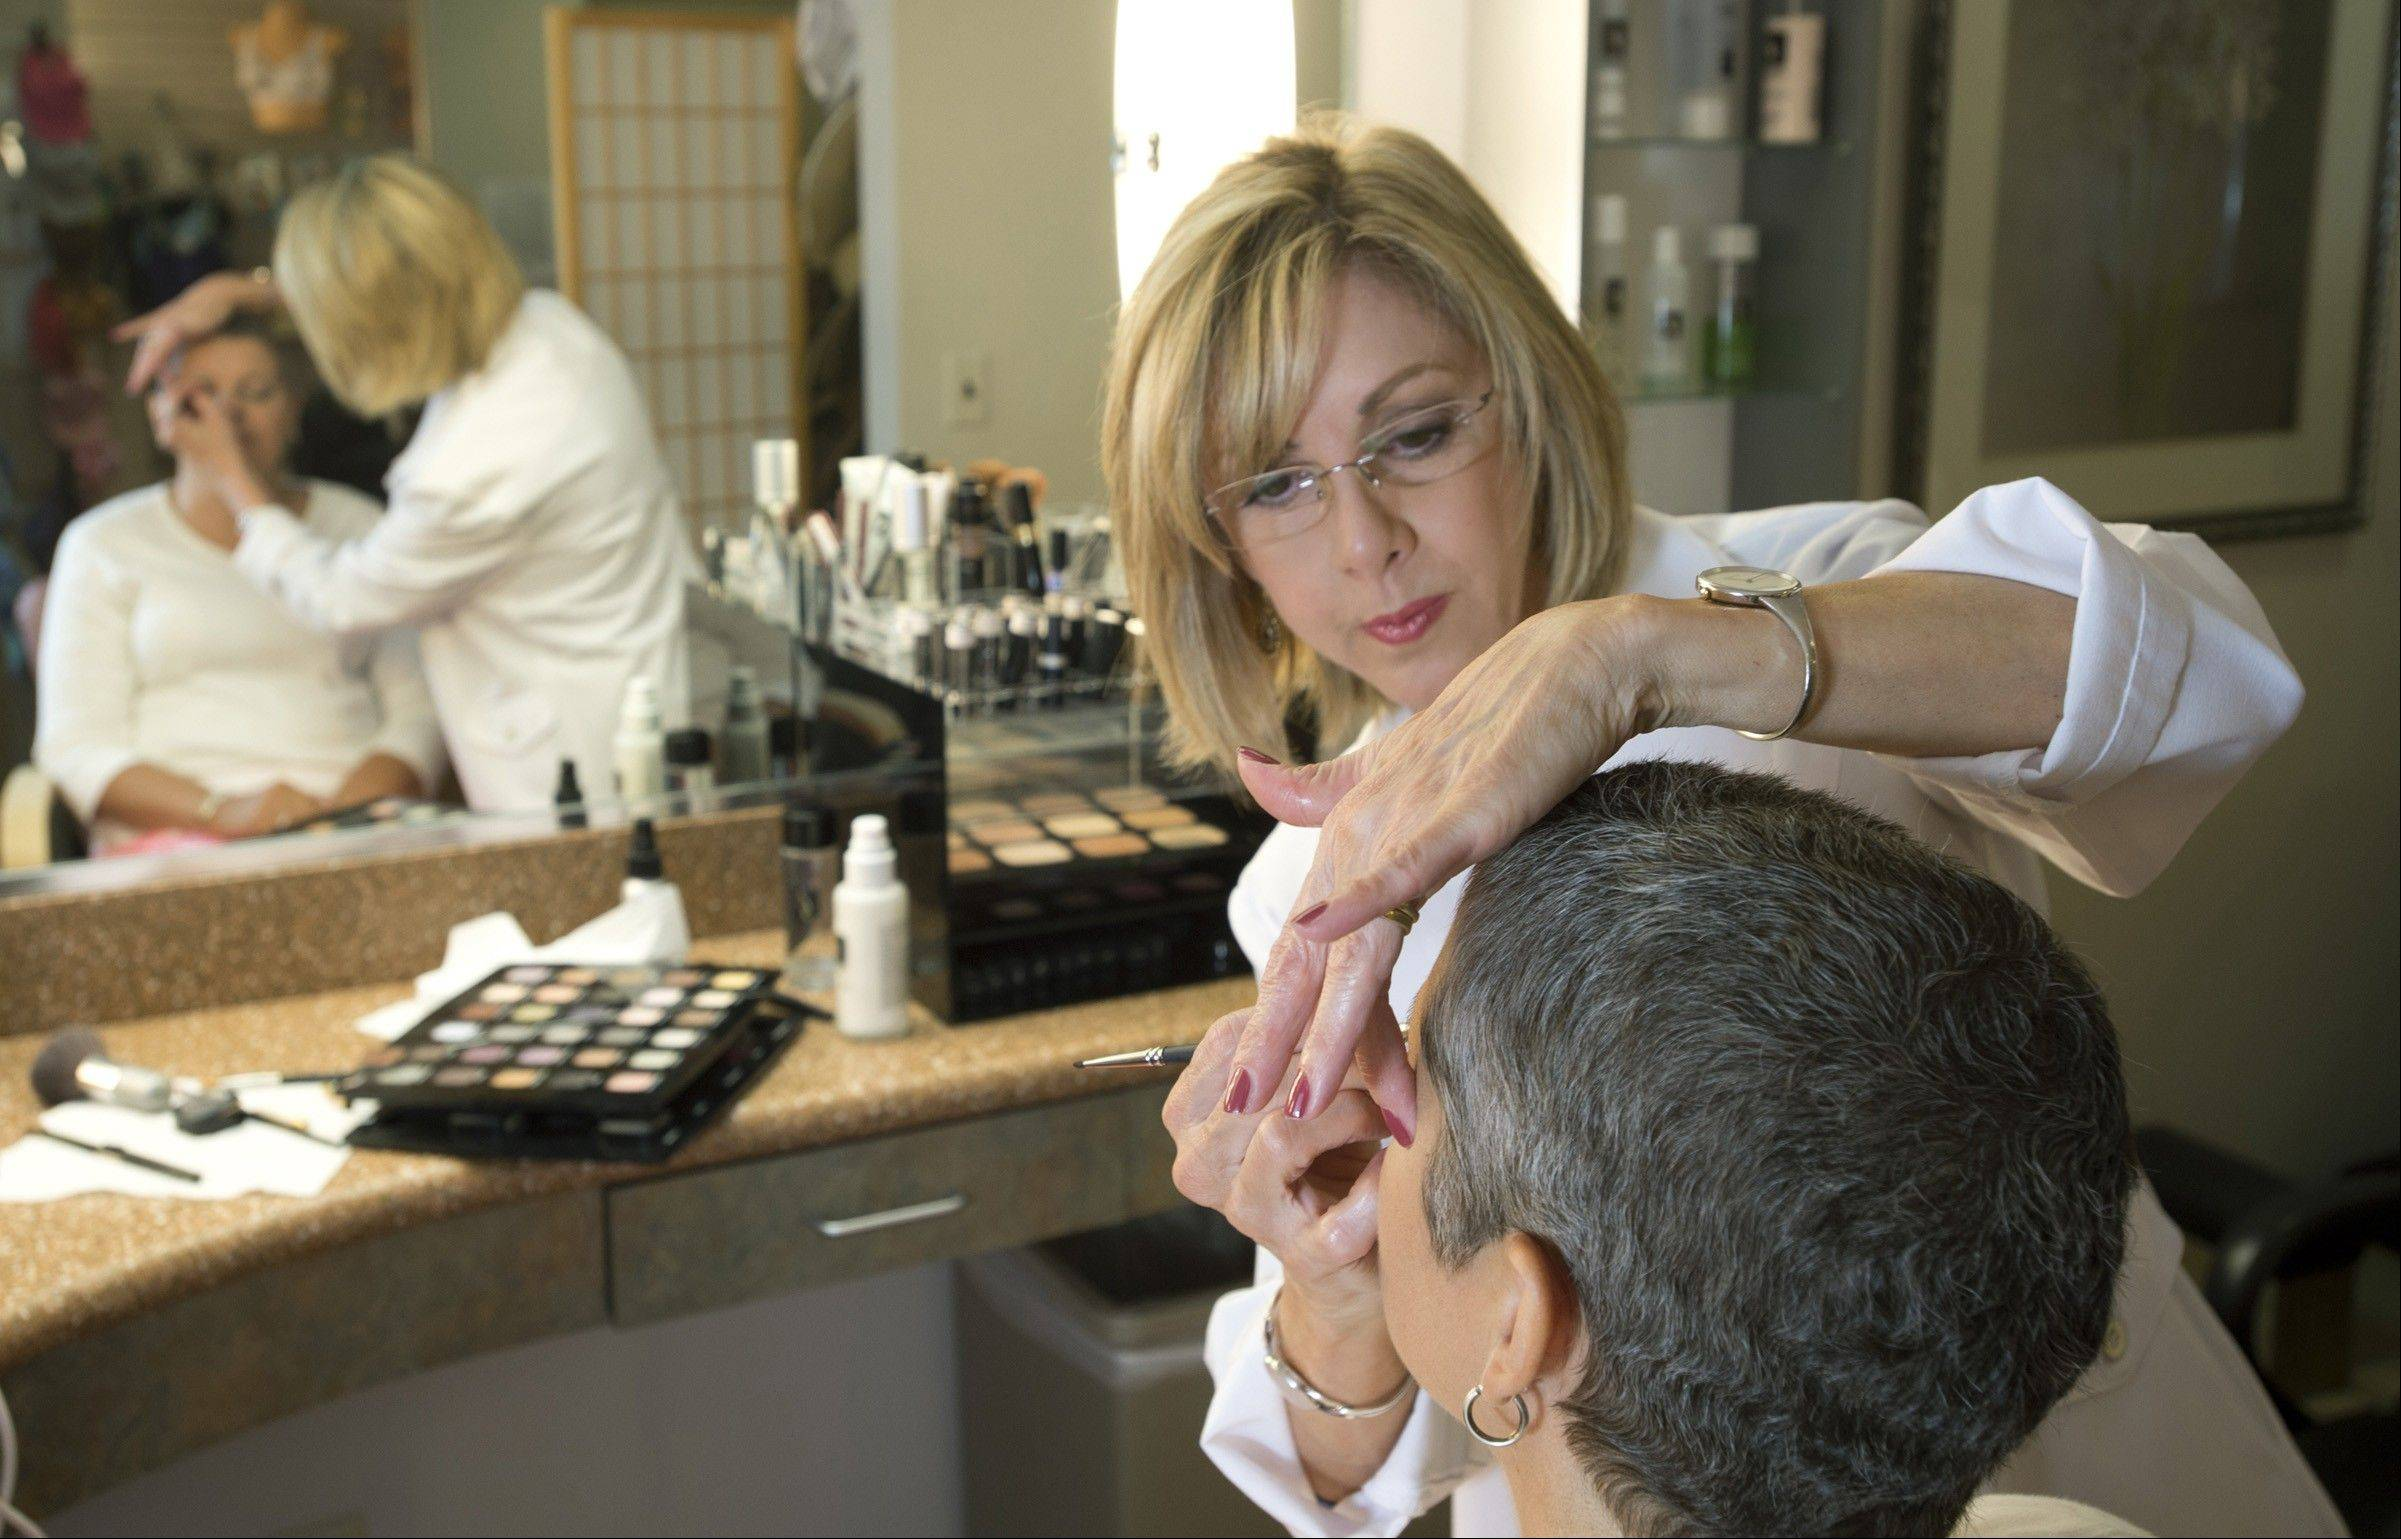 Marianne Kelly applies makeup to patient Debra Fruehling of Indian Head, Md., at the Image Recovery Center, a beauty salon at Johns Hopkins Hospital in Baltimore, Md.